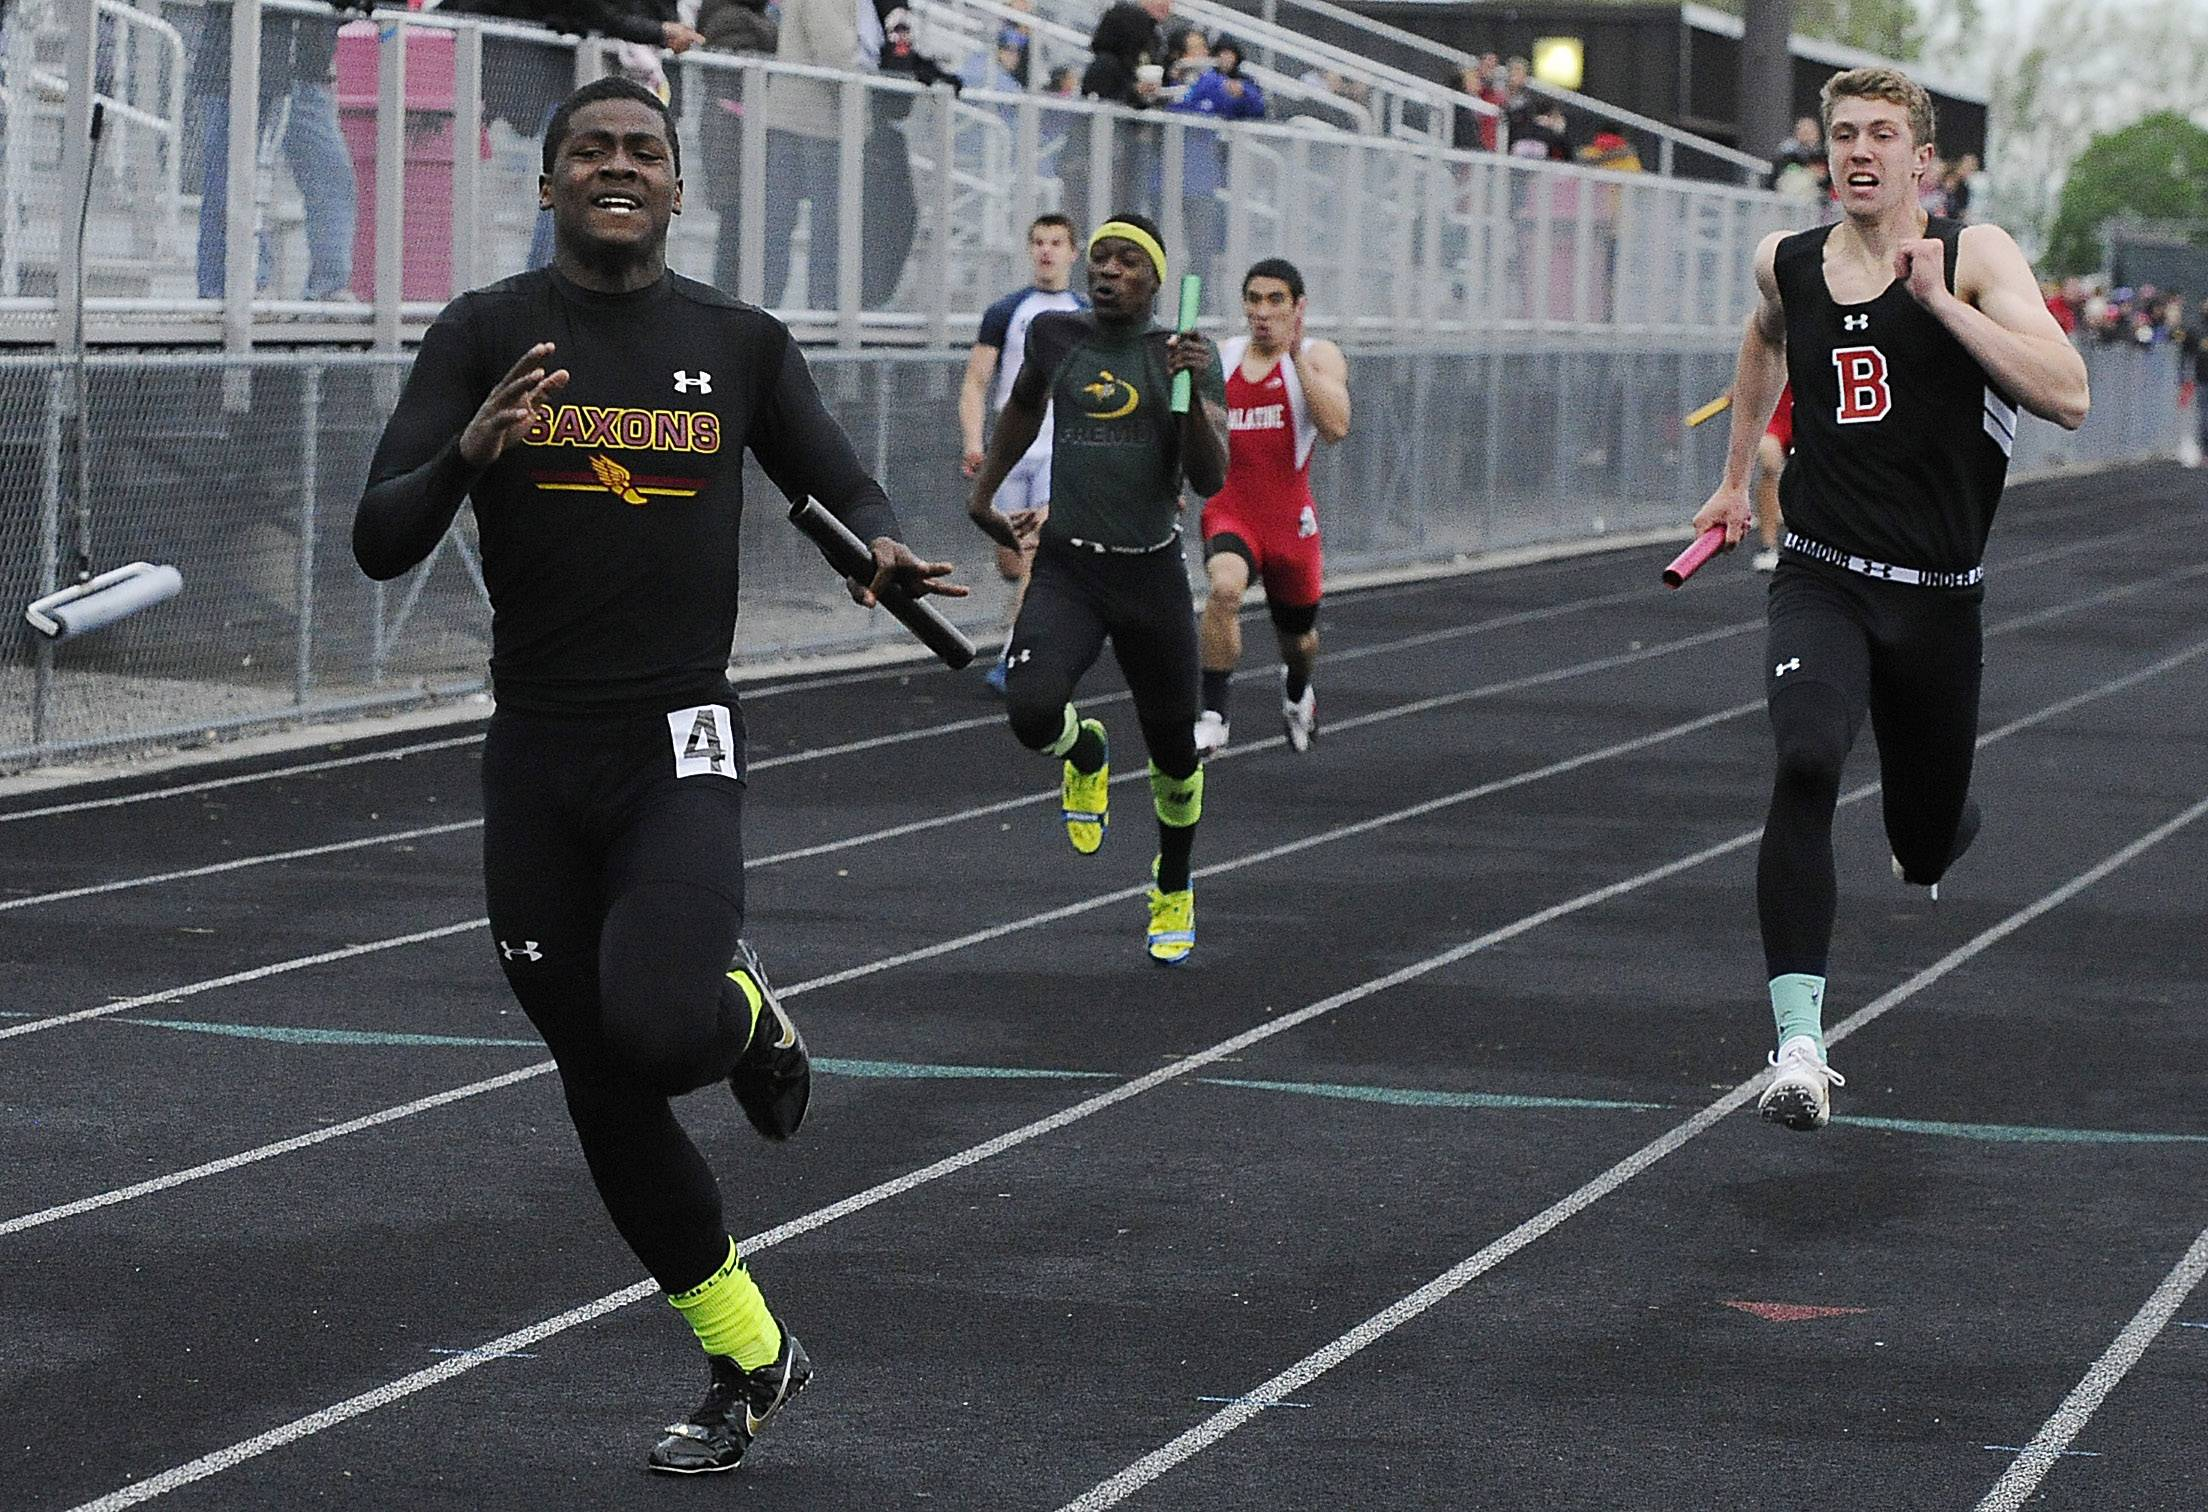 Schaumburg's Shandall Thomas finished a victory in the 4x100 relay with a league record of 41.81 during the Mid-Suburban League meet Friday at Palatine.